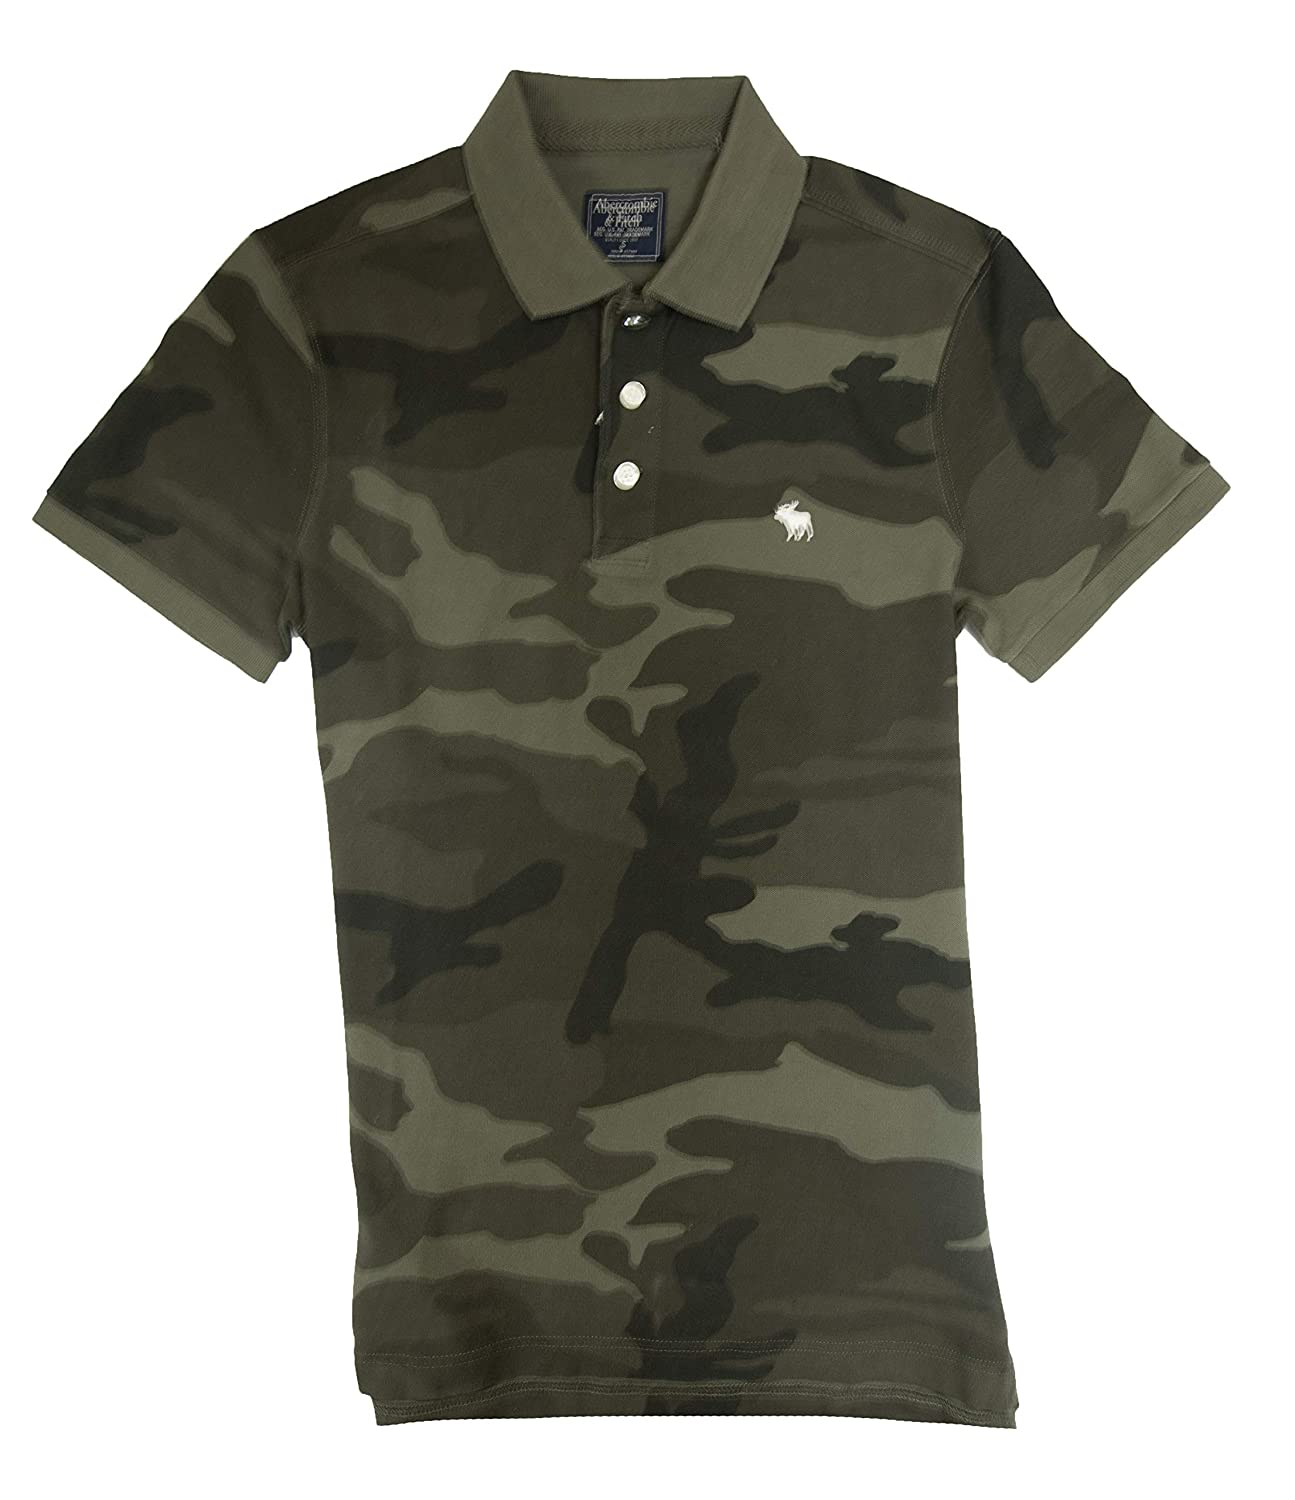 b650abd7cedca Abercrombie & Fitch Men's Polo Shirt at Amazon Men's Clothing store: